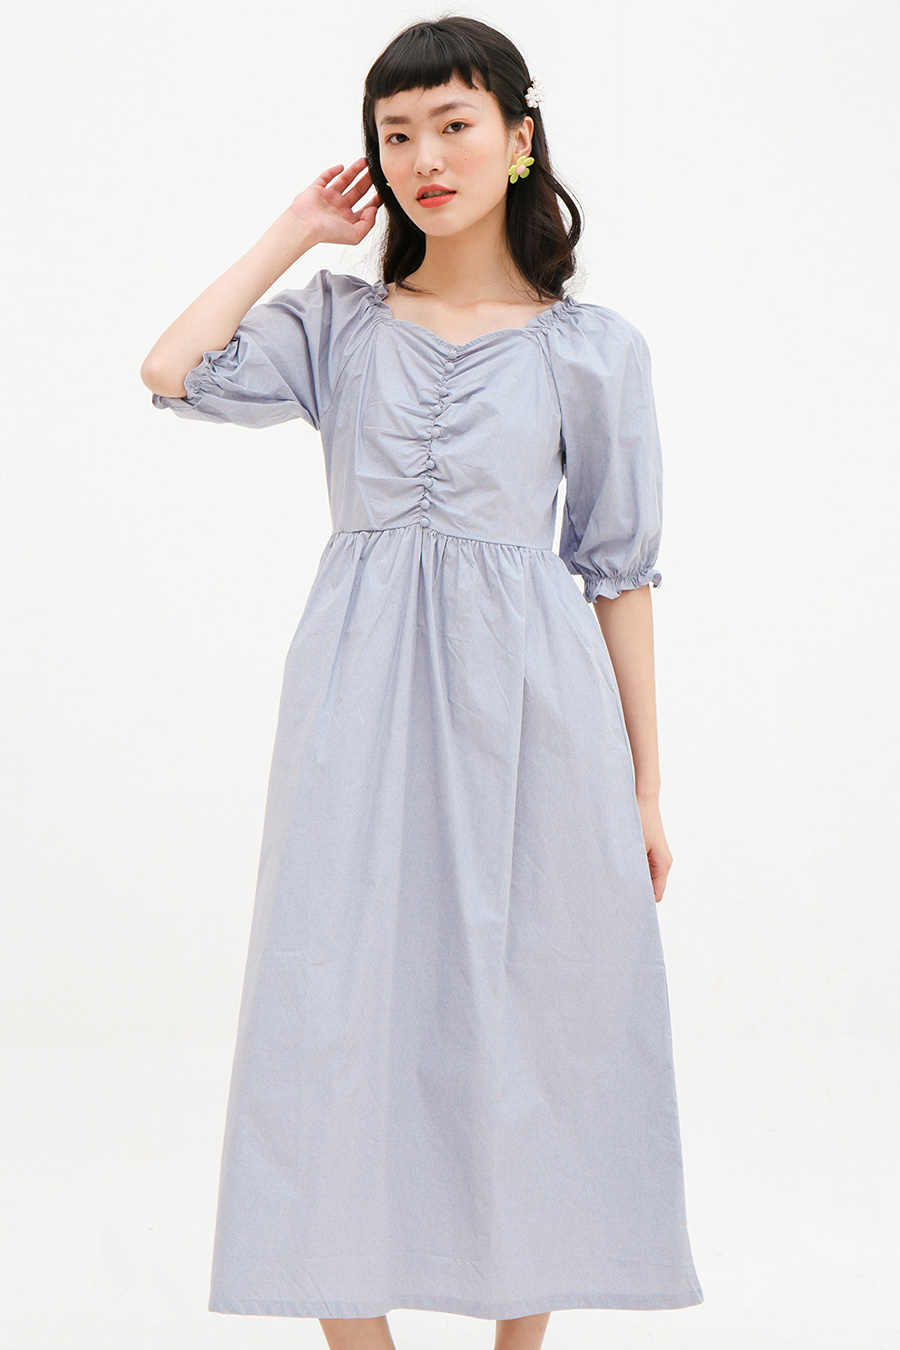 AURORE DRESS - PERRY